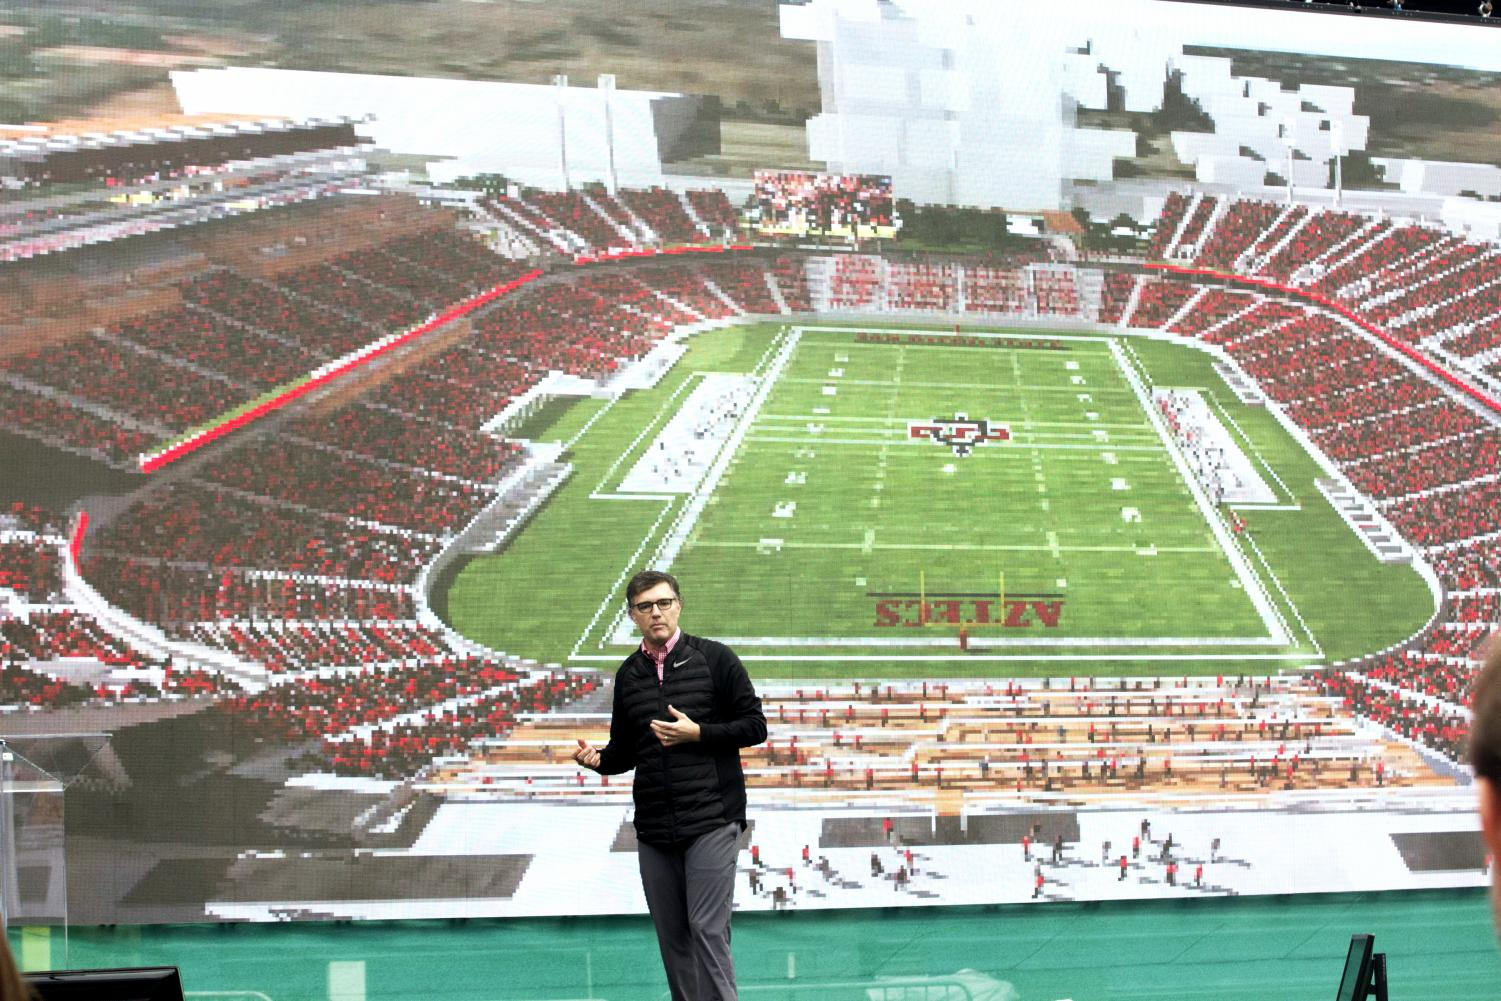 Director of Athletics John David Wicker unveils the renderings for SDSU's proposed Campus West stadium in November 2017.